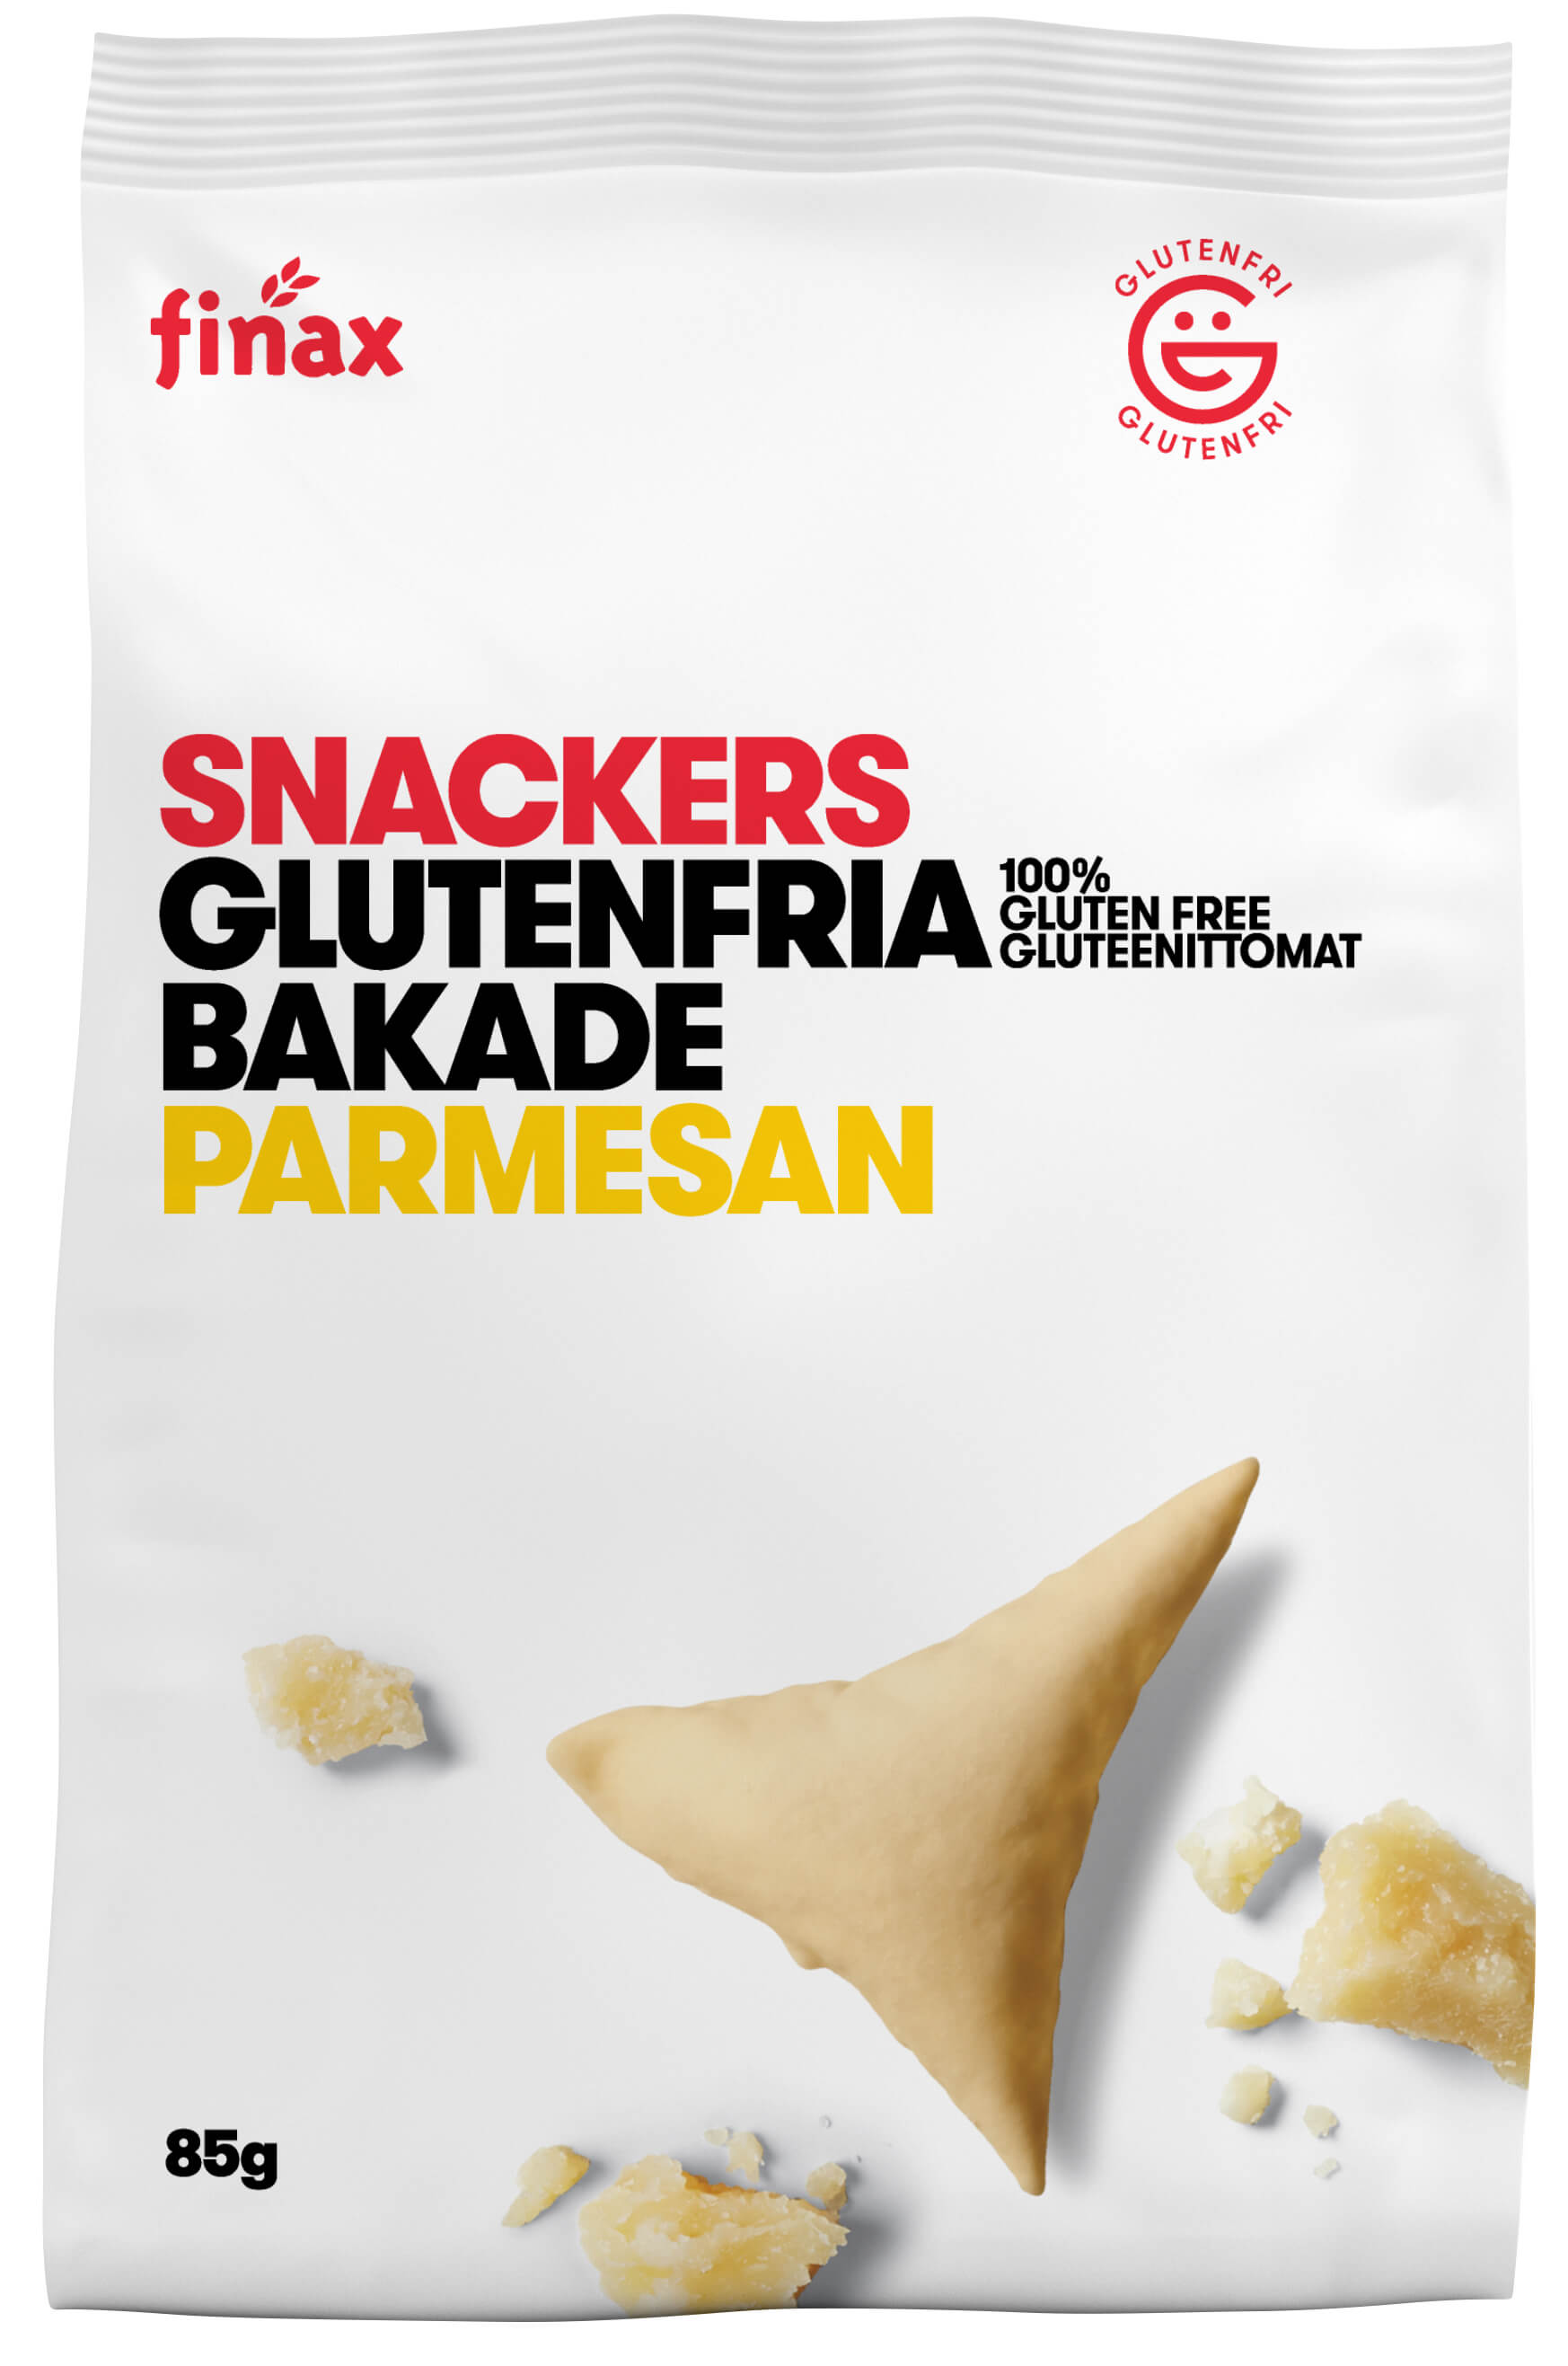 Produkt: Snackers parmesan